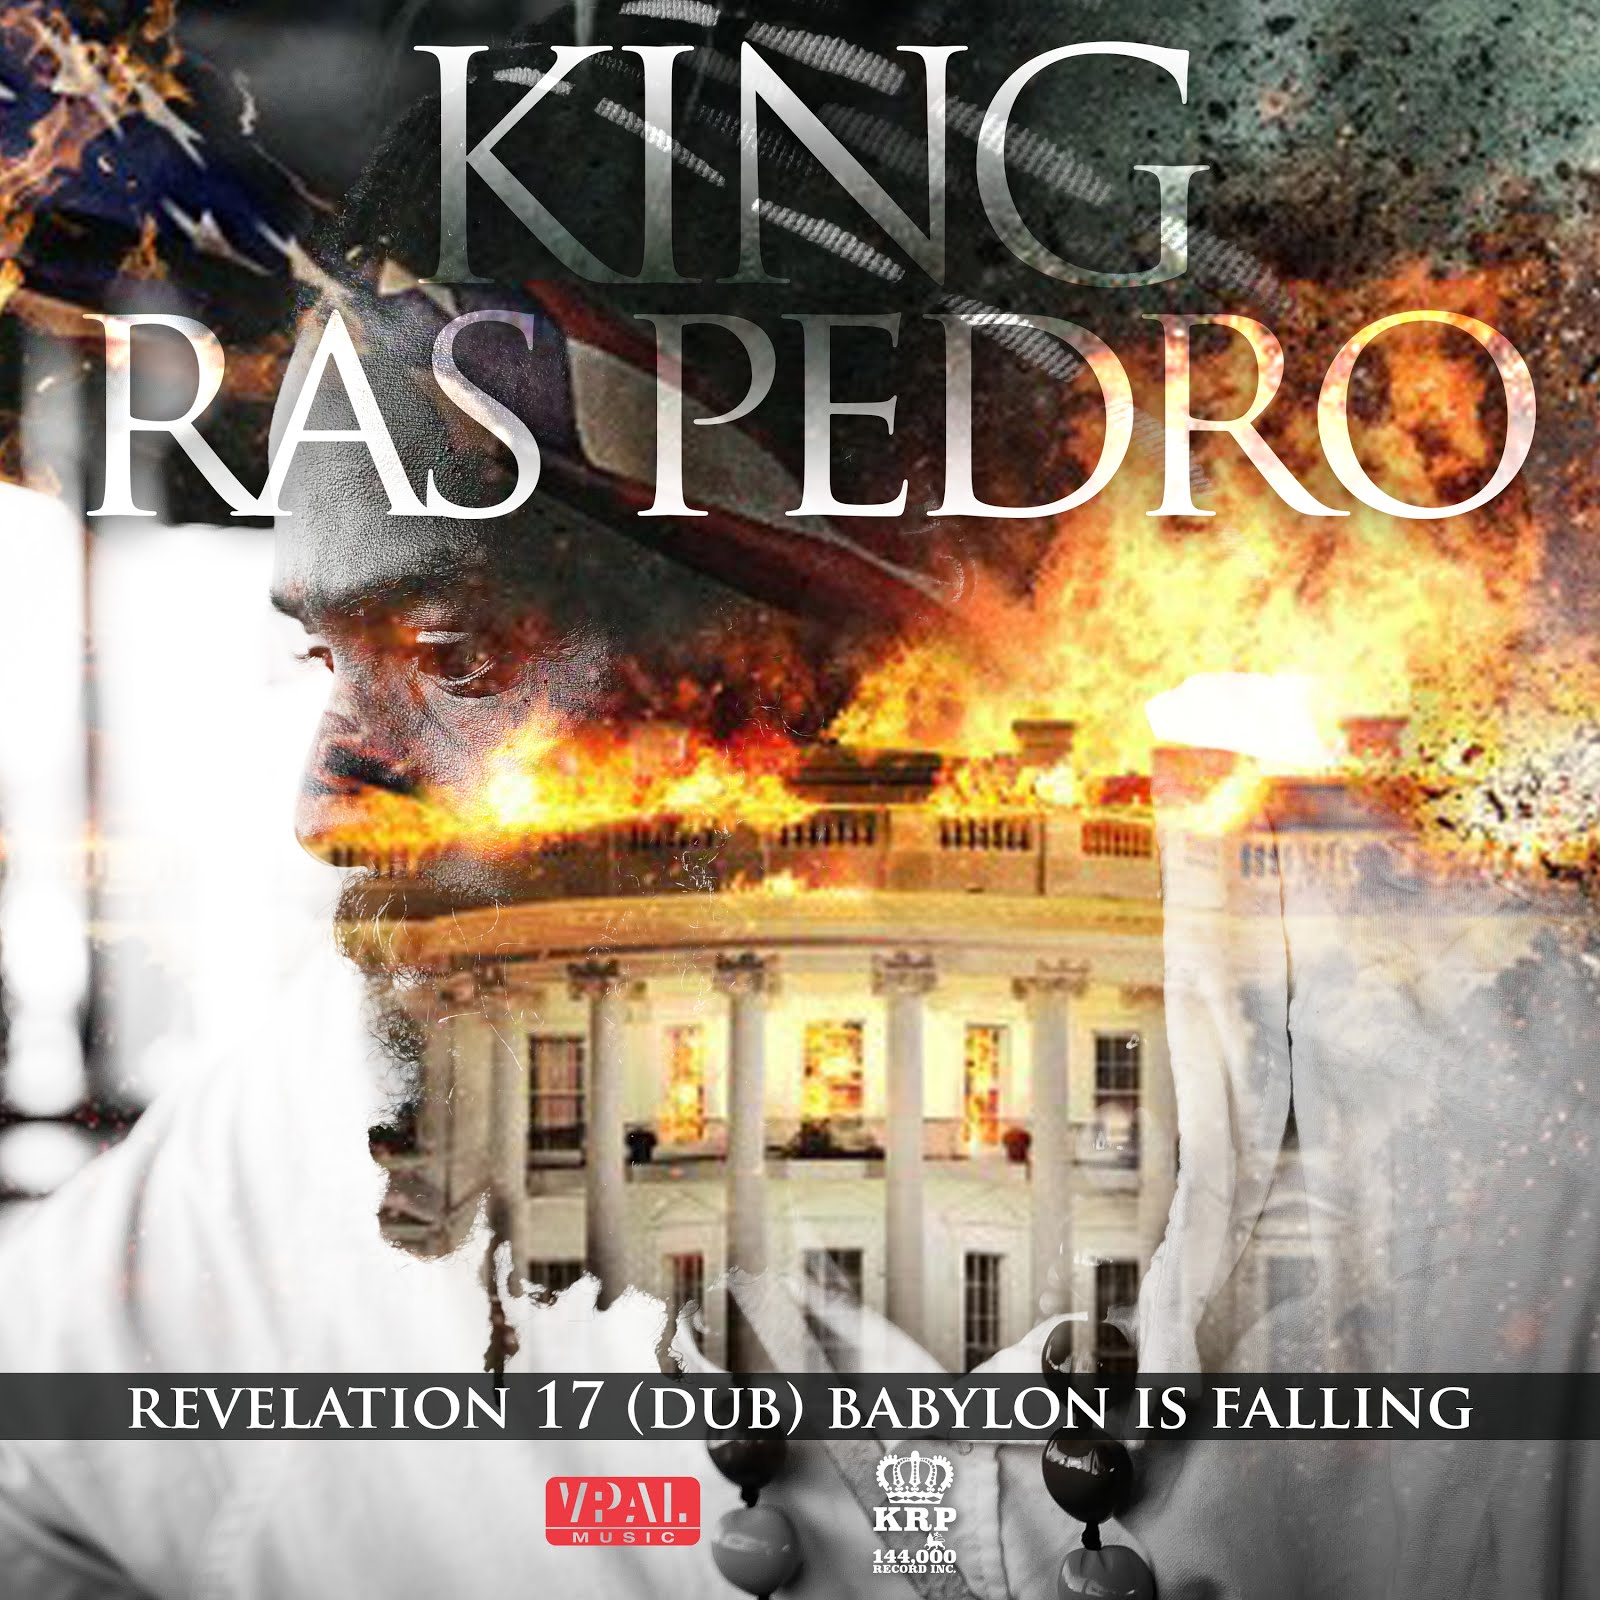 King Ras Pedro Revelation 17 Babylon Is Falling (Dub) - Single